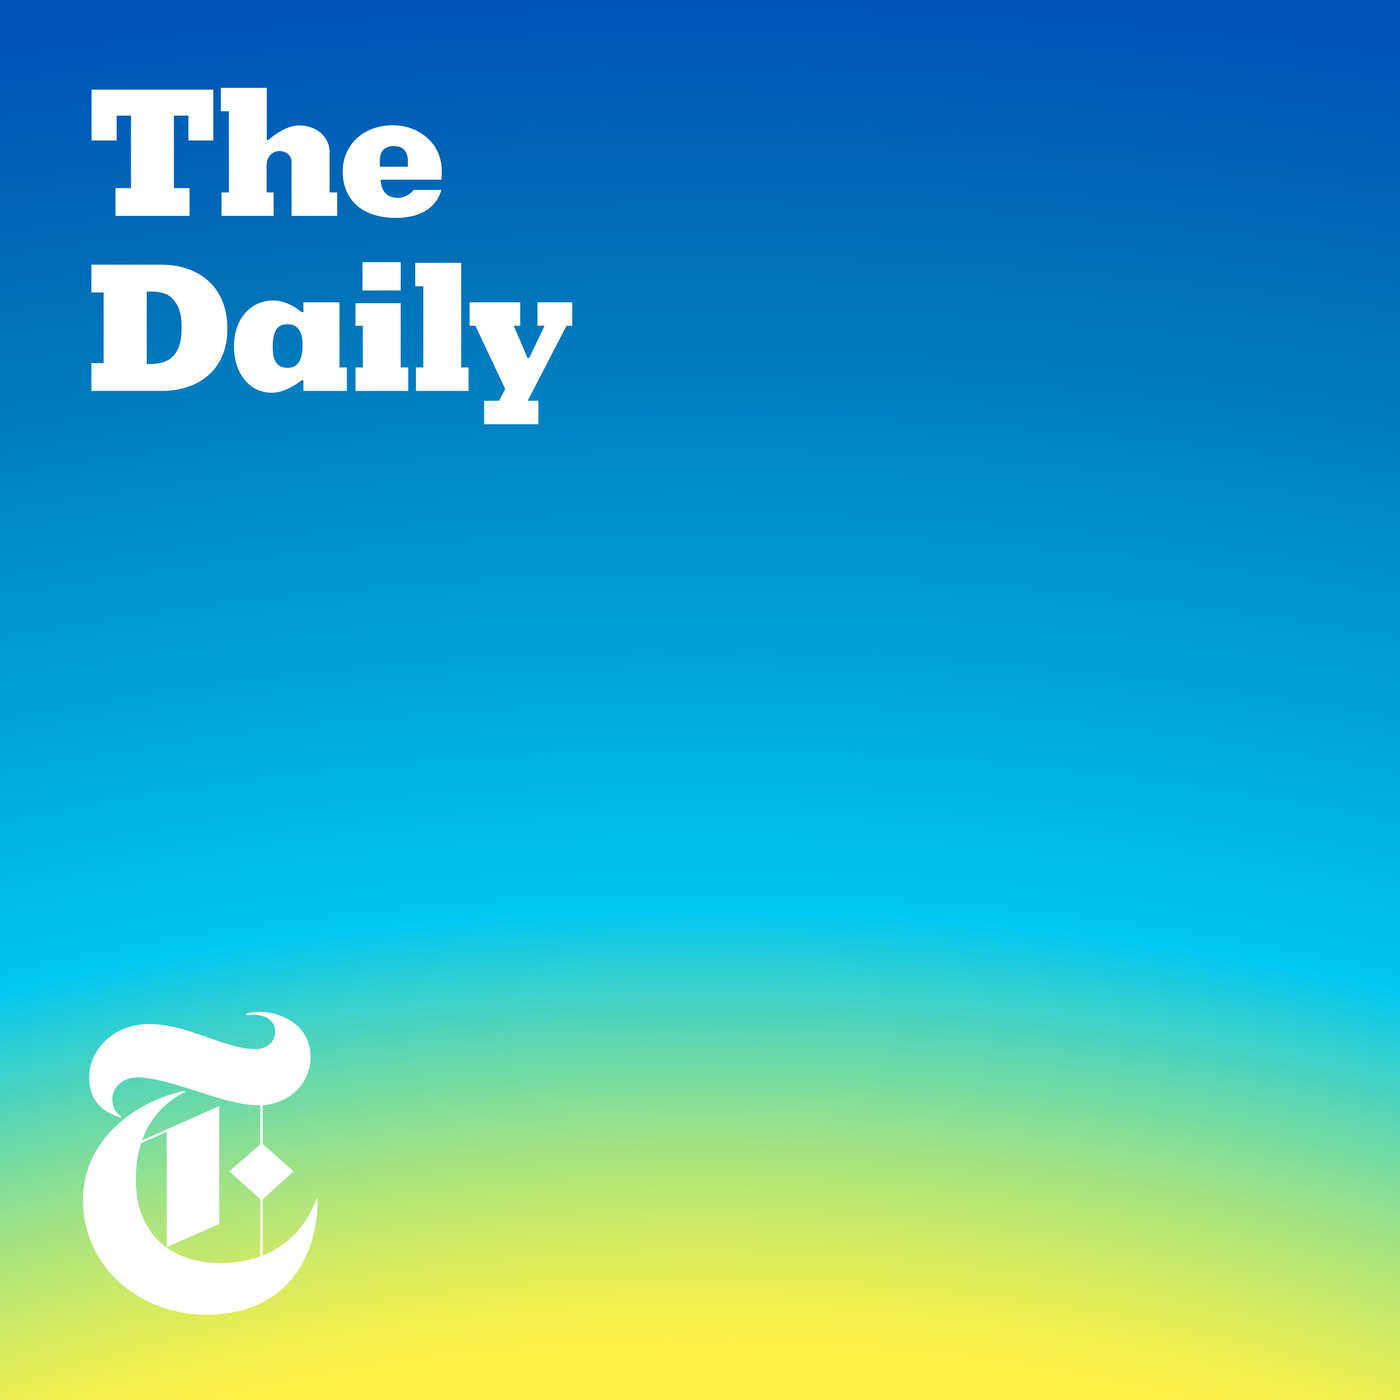 10. The Daily - The New York Times